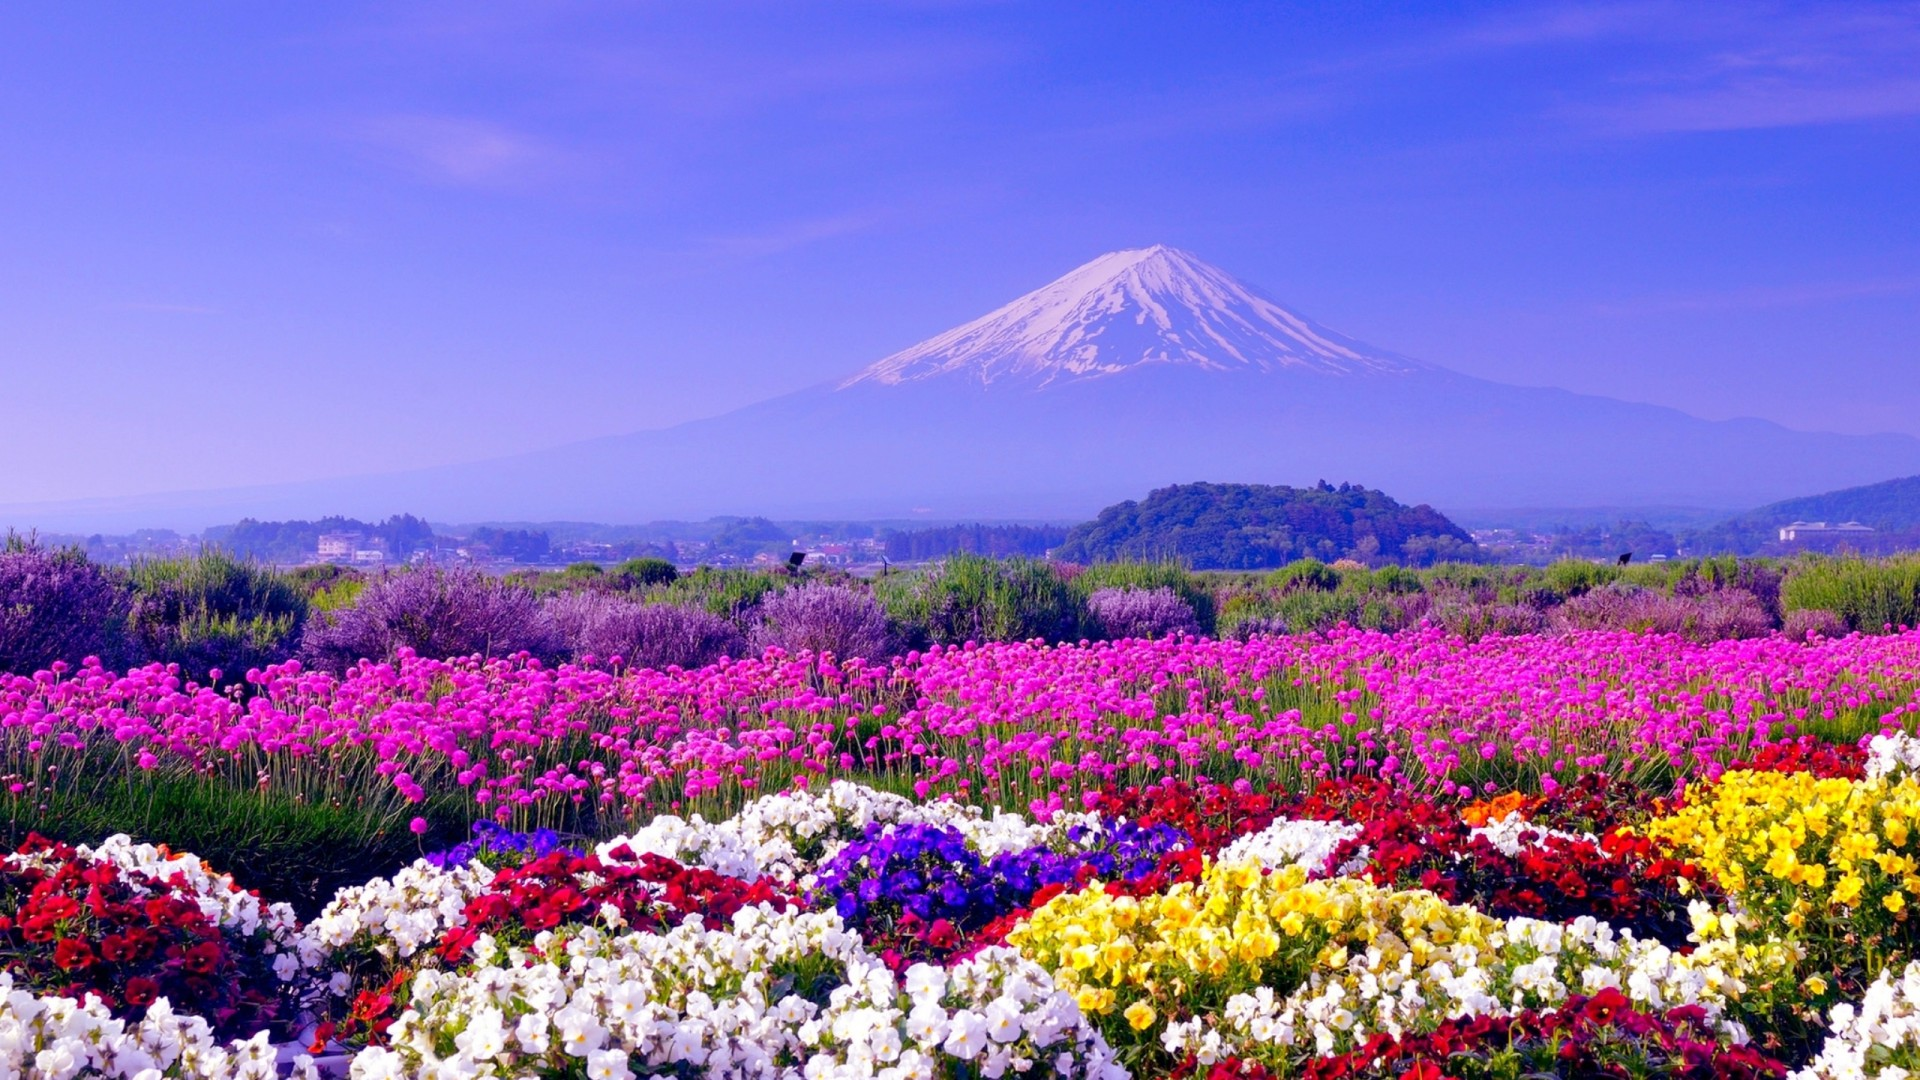 Spring in japan wallpapers pixelstalk net - Nature japan wallpaper ...